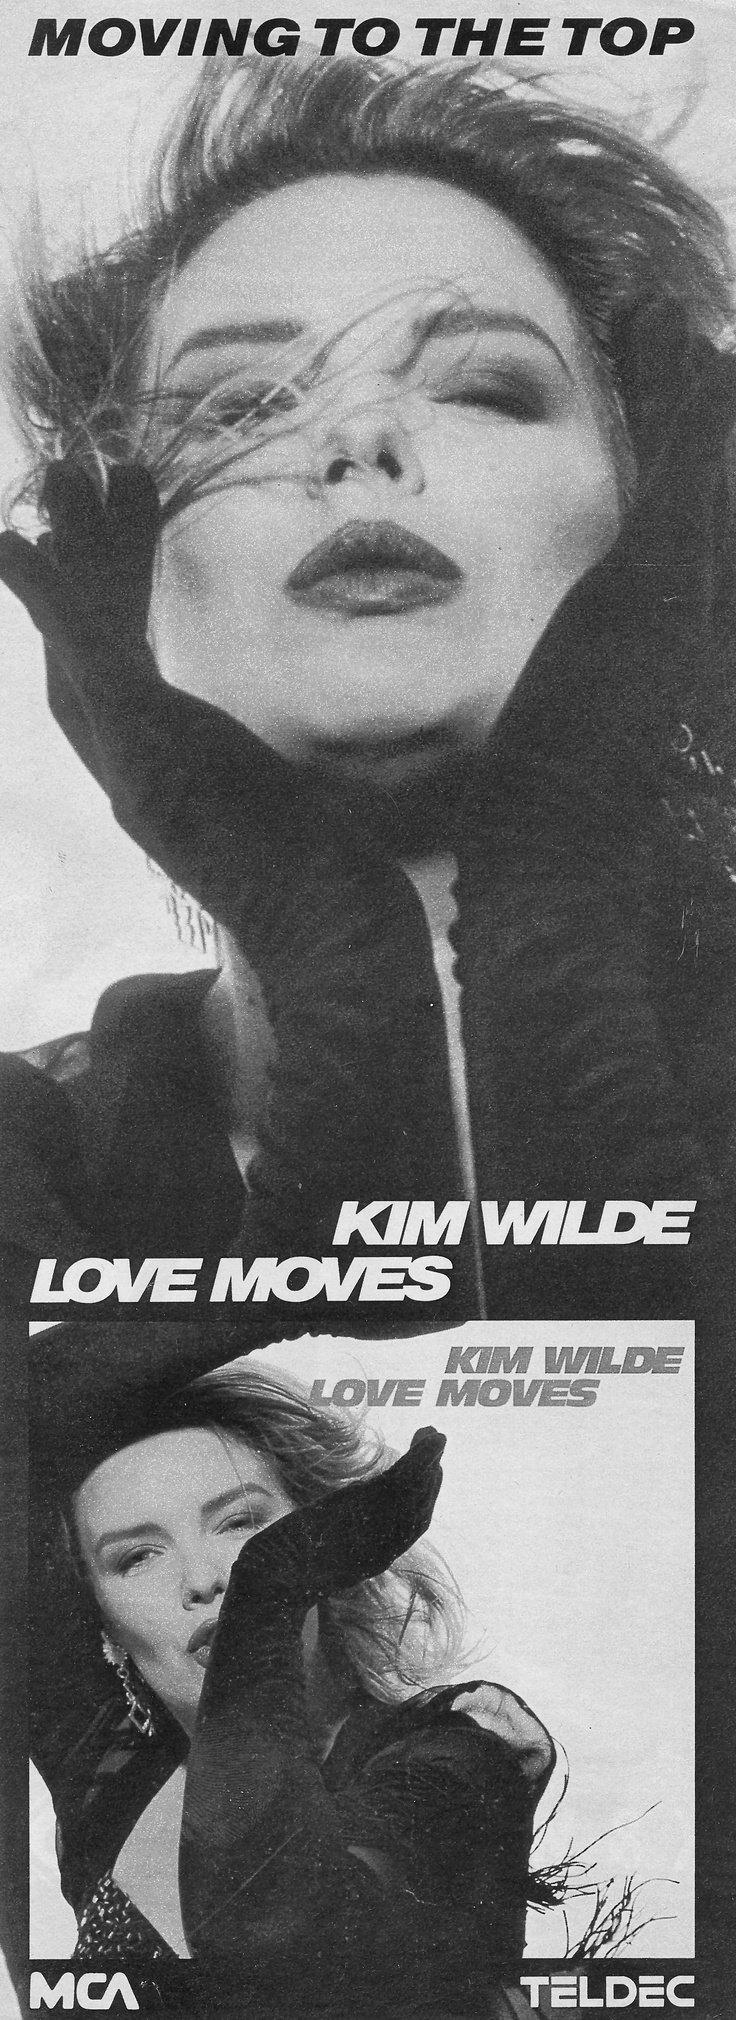 German advert for 'Love moves', 1990.